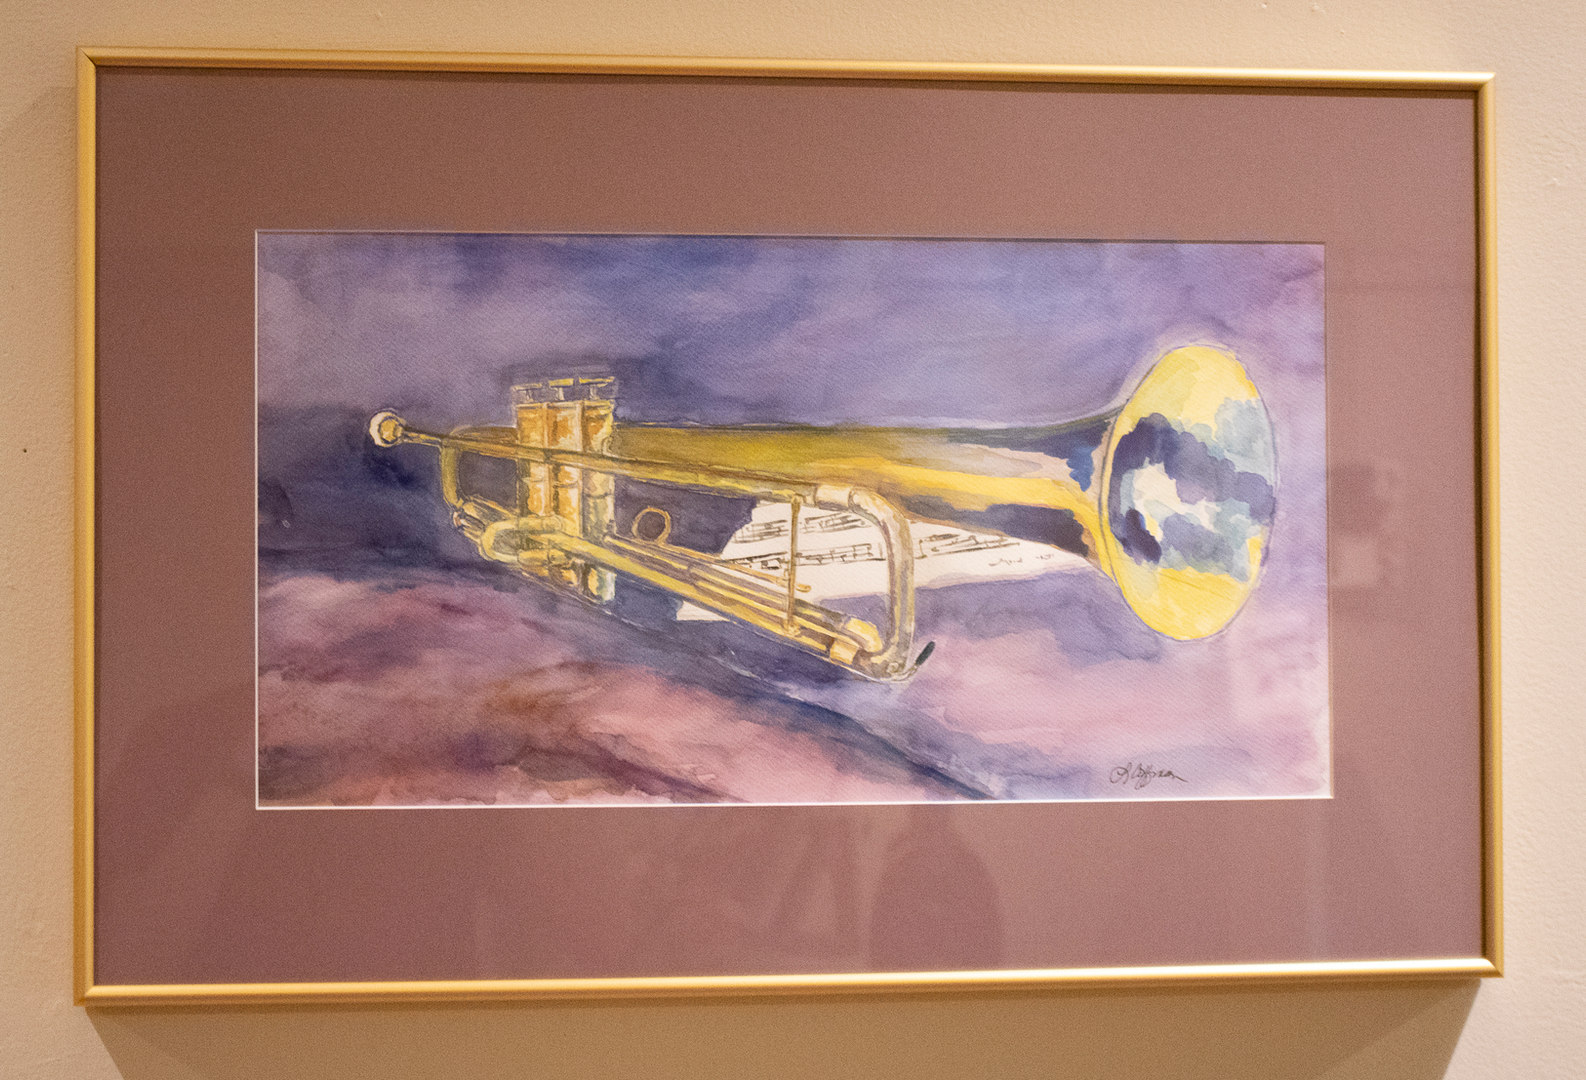 Keith's Trumpet by Leah K. Coffman